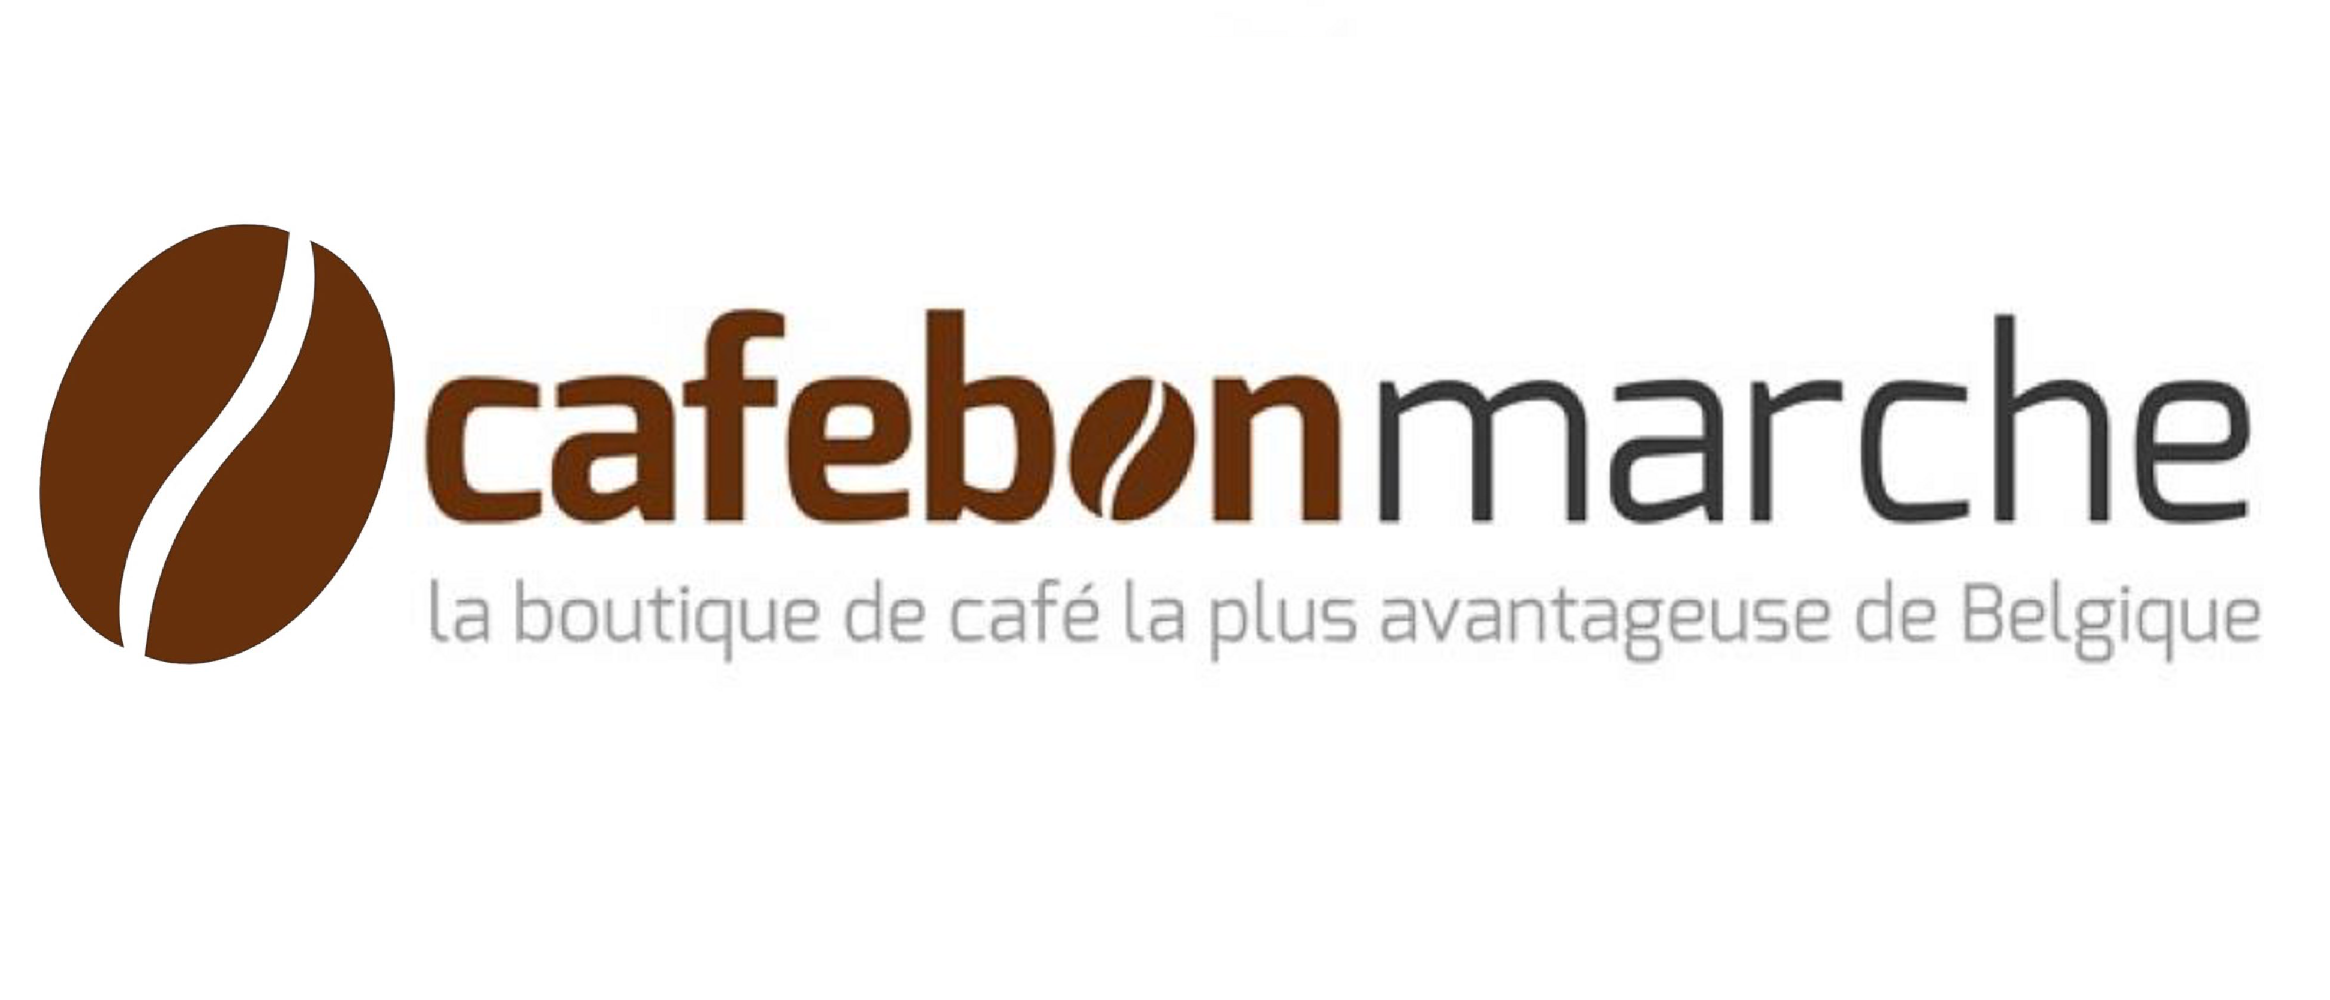 Cafebonmarche.be